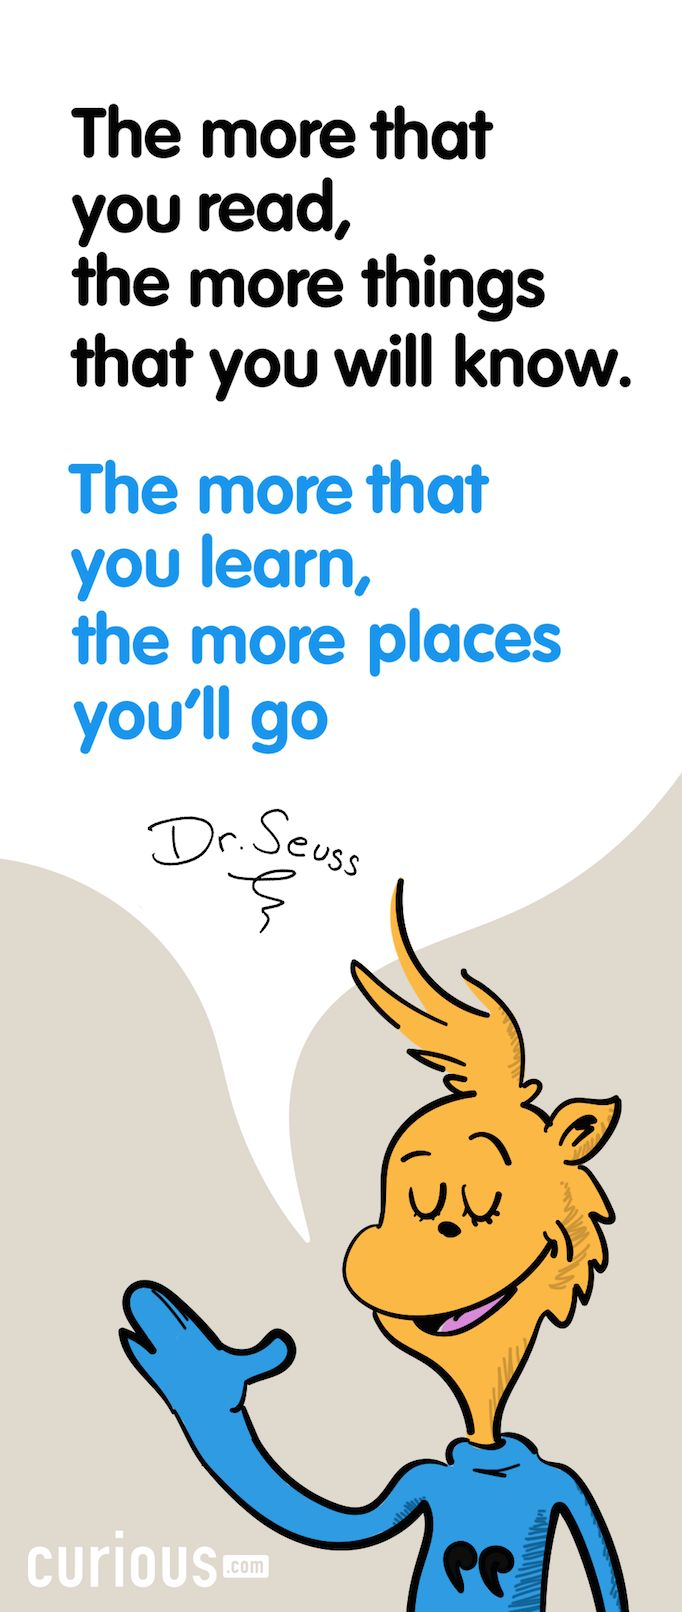 """""""The more that you read, the more things you will know. The more that you learn, the more places you'll go."""" - Dr. Seuss #IAmCurious"""